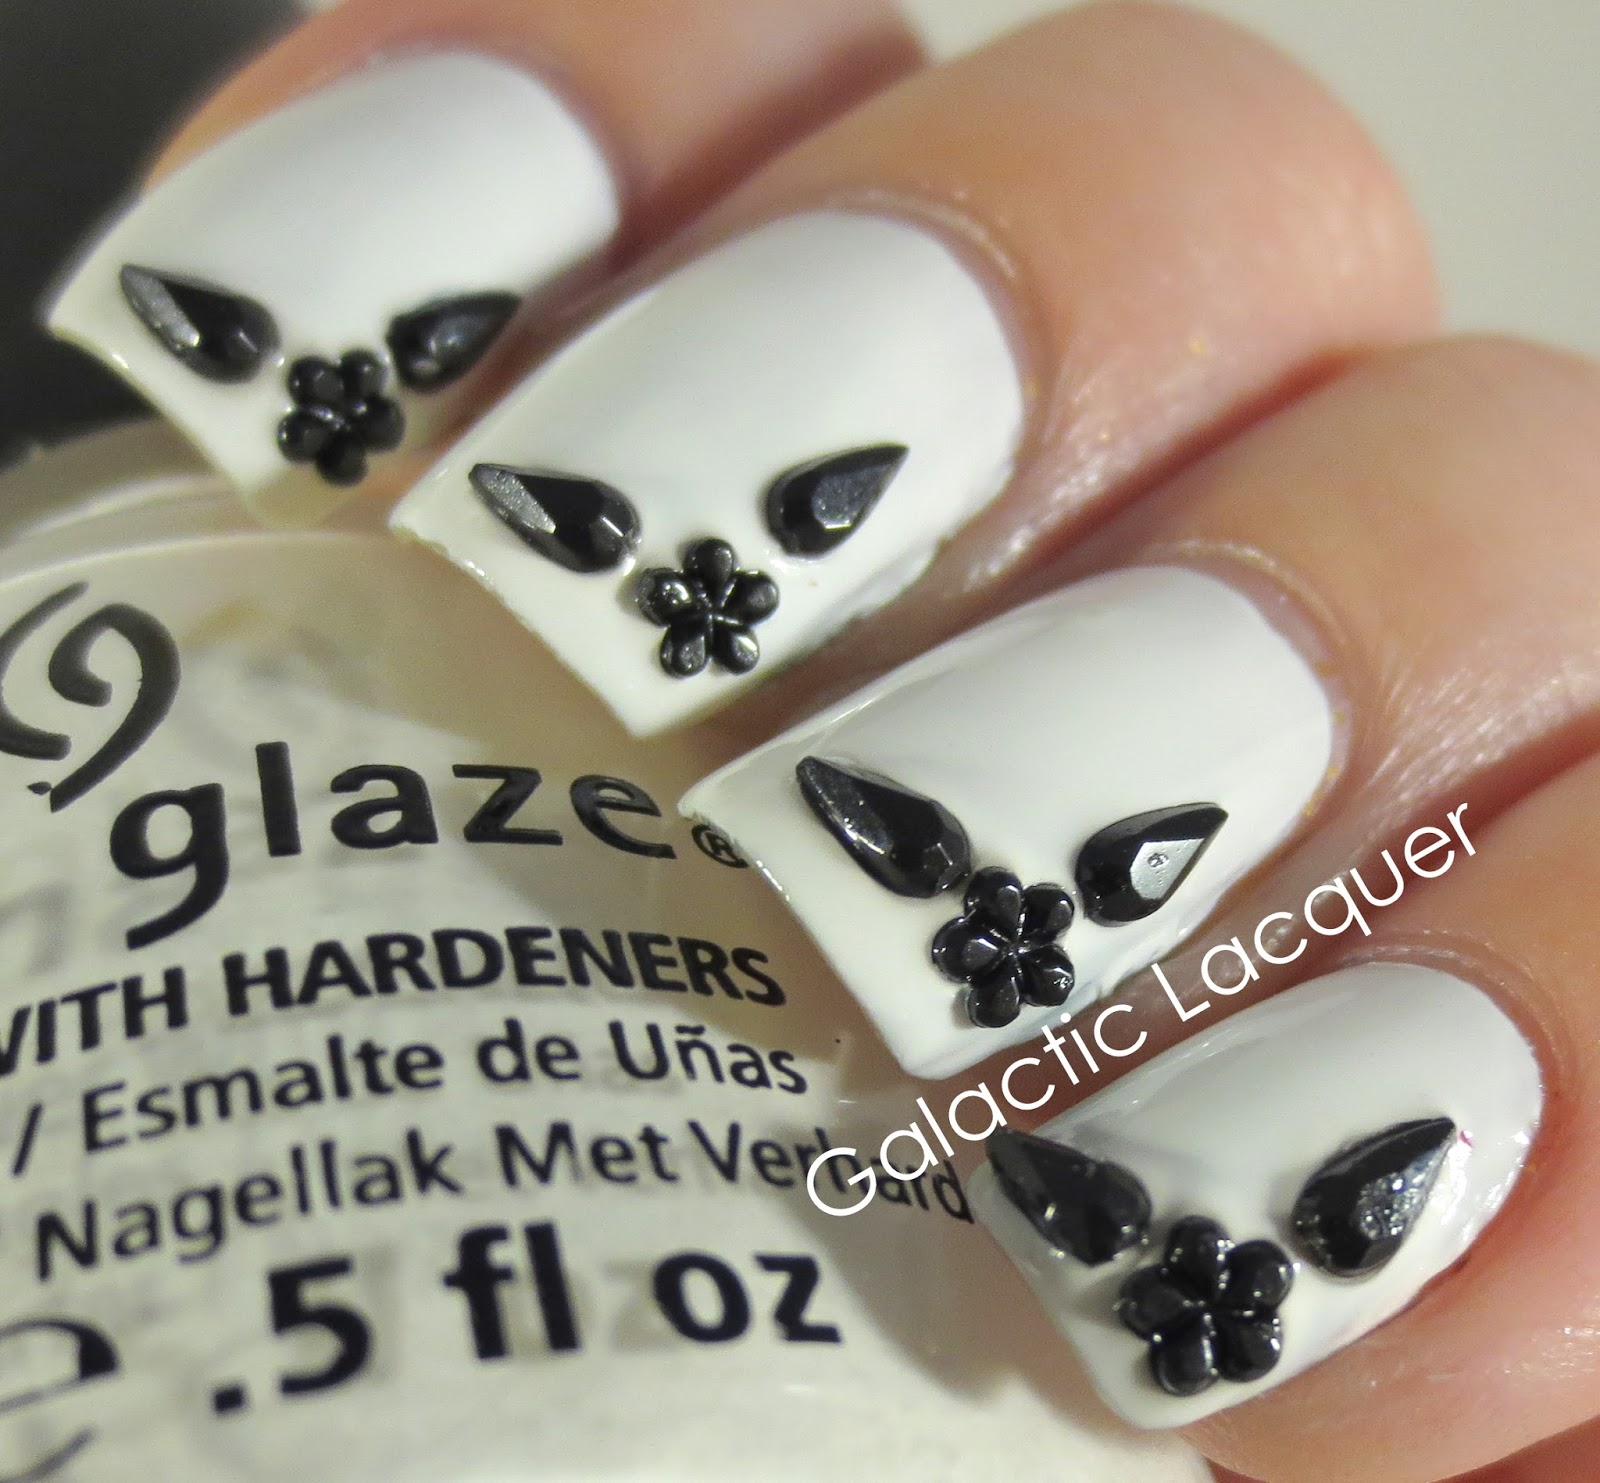 Galactic Lacquer Bw Nail Art Challenge Glam Cute